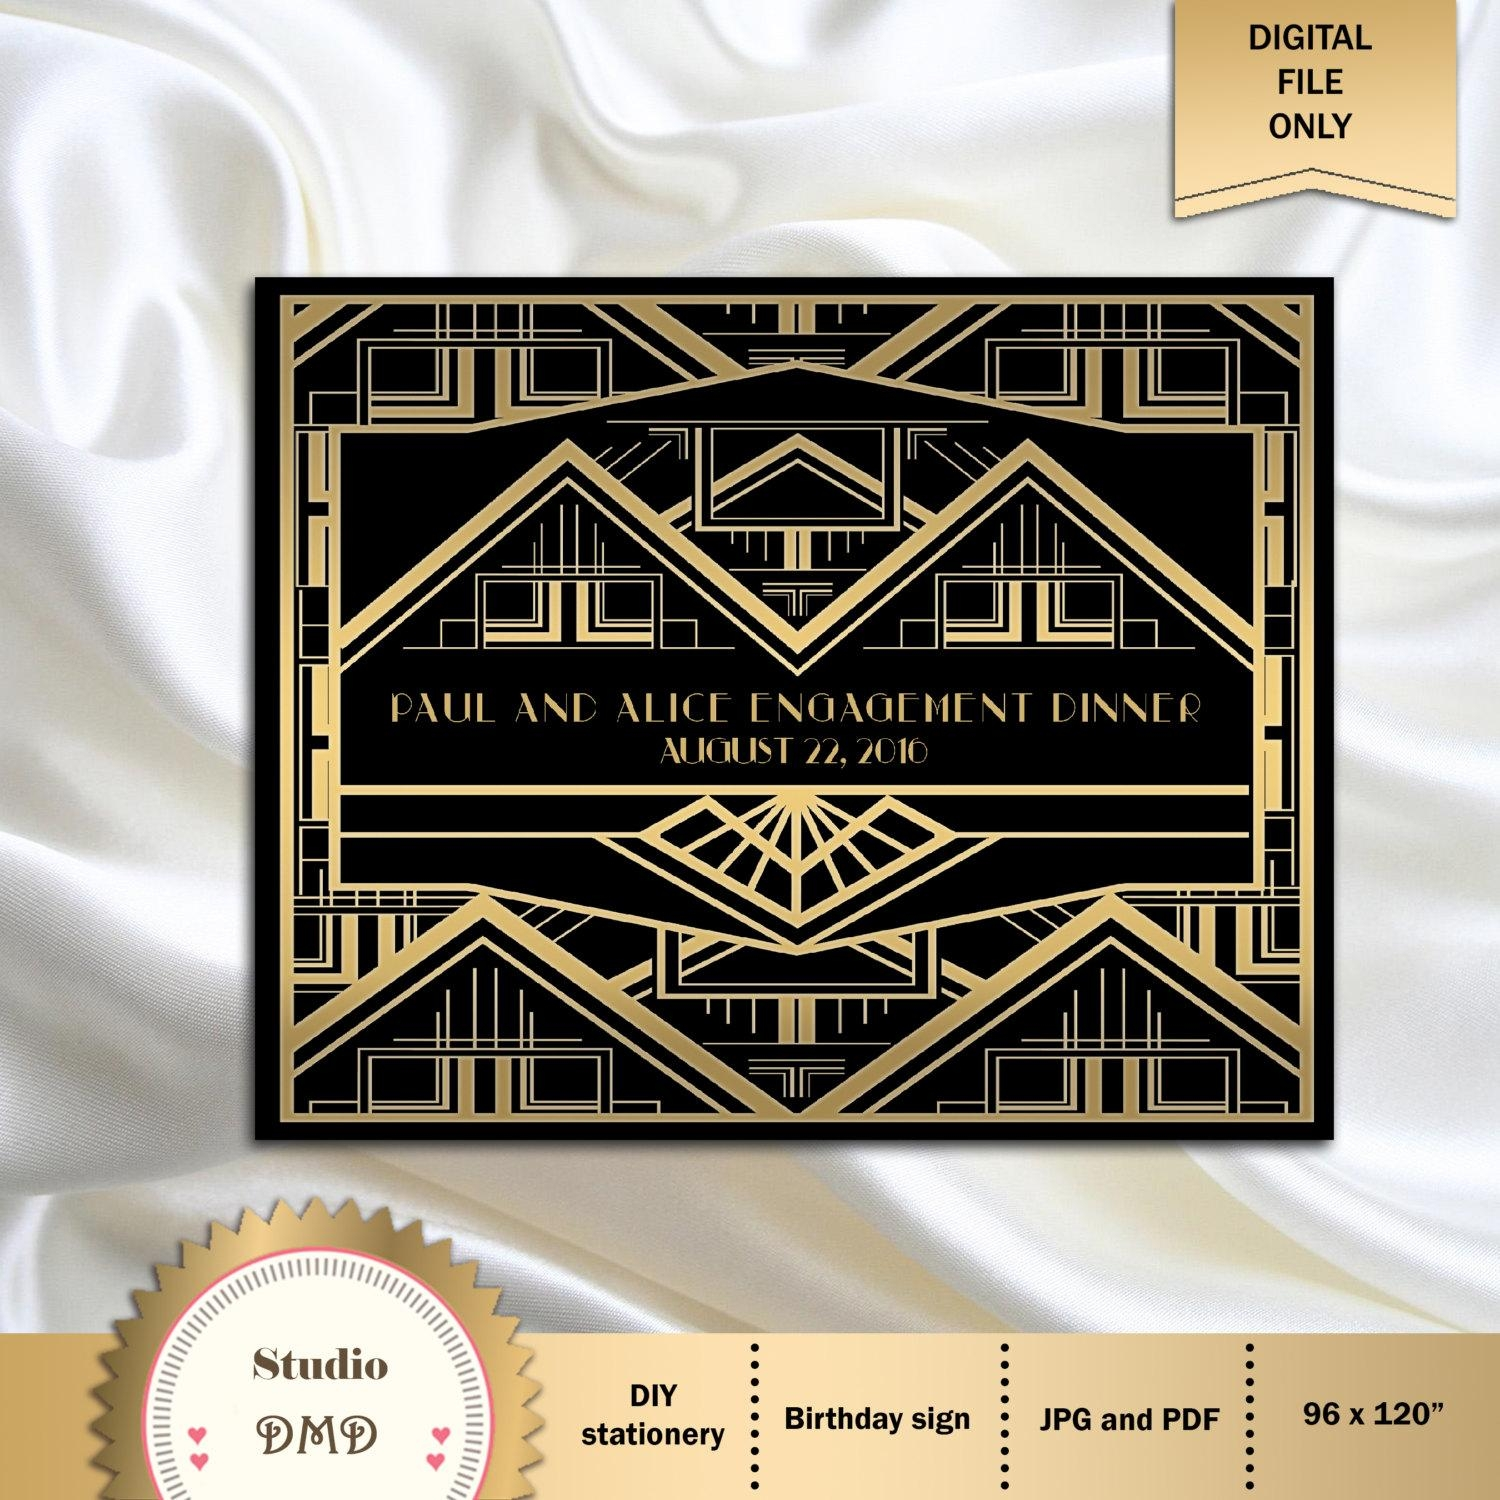 Great Gatsby Art Deco Backdrop For Photos Wall Decor Party regarding Great Gatsby Wall Art